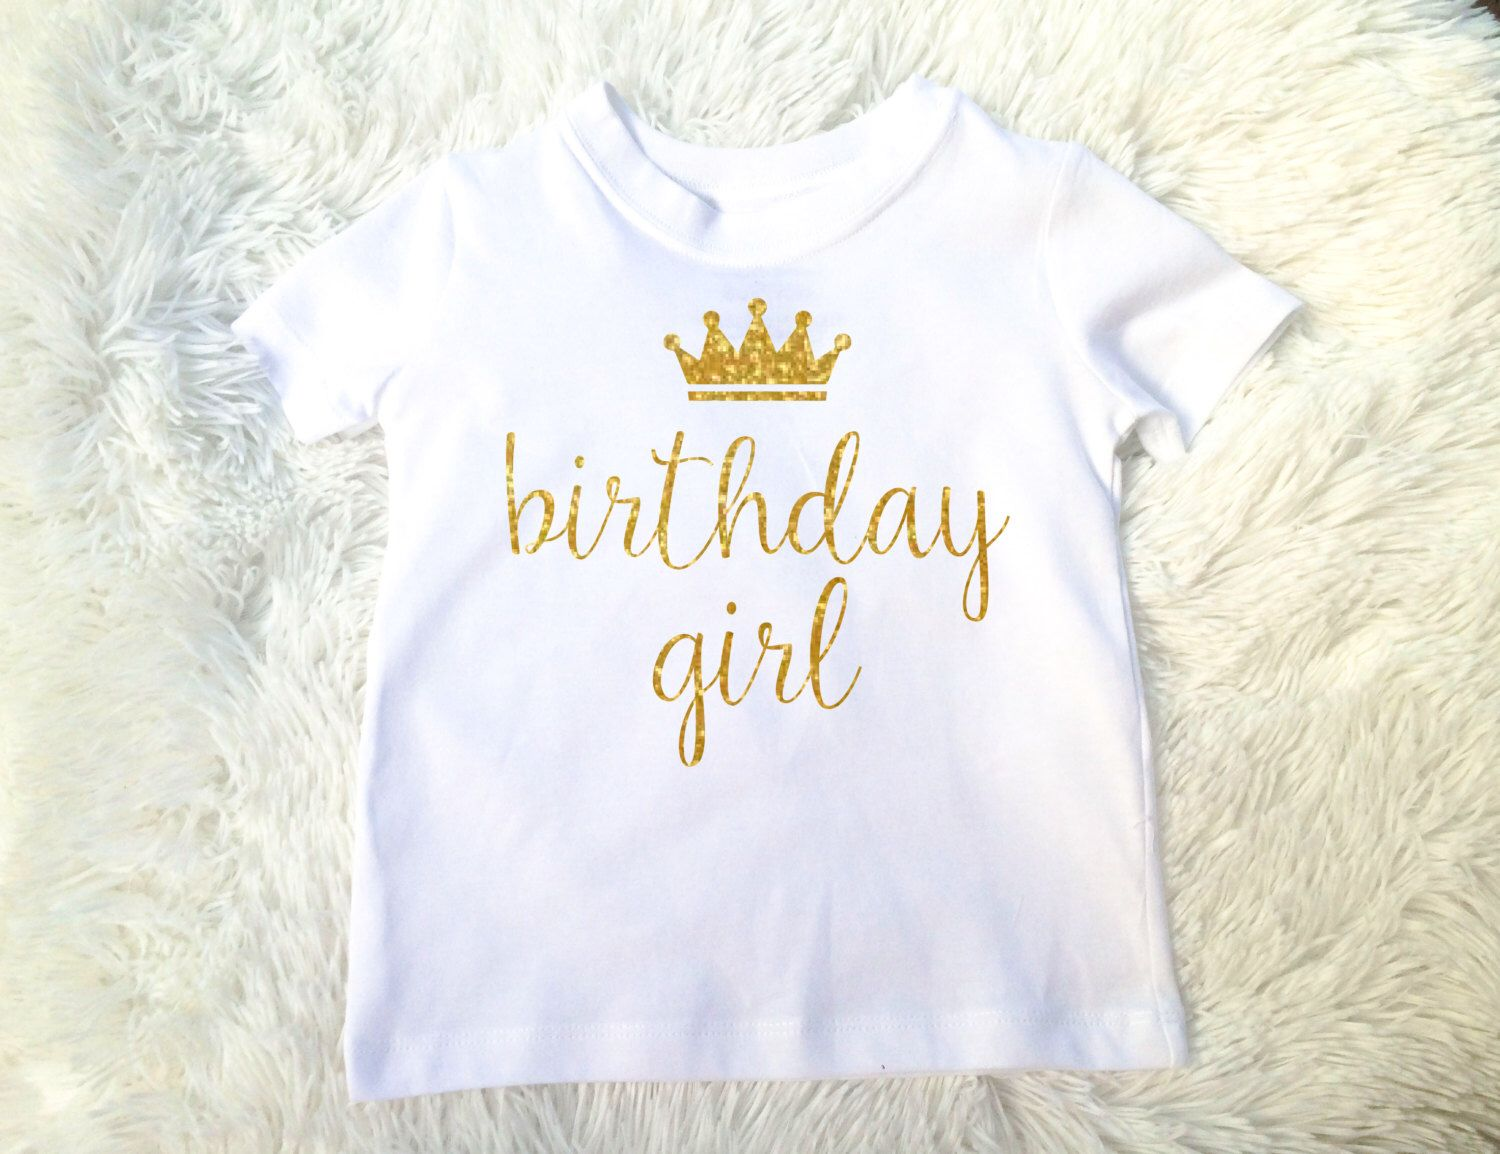 number 1-7 Personalized Birthday with custom name /& age T-shirt Birthday T-shirt for she birthday Crown birthday Fast Shipping!